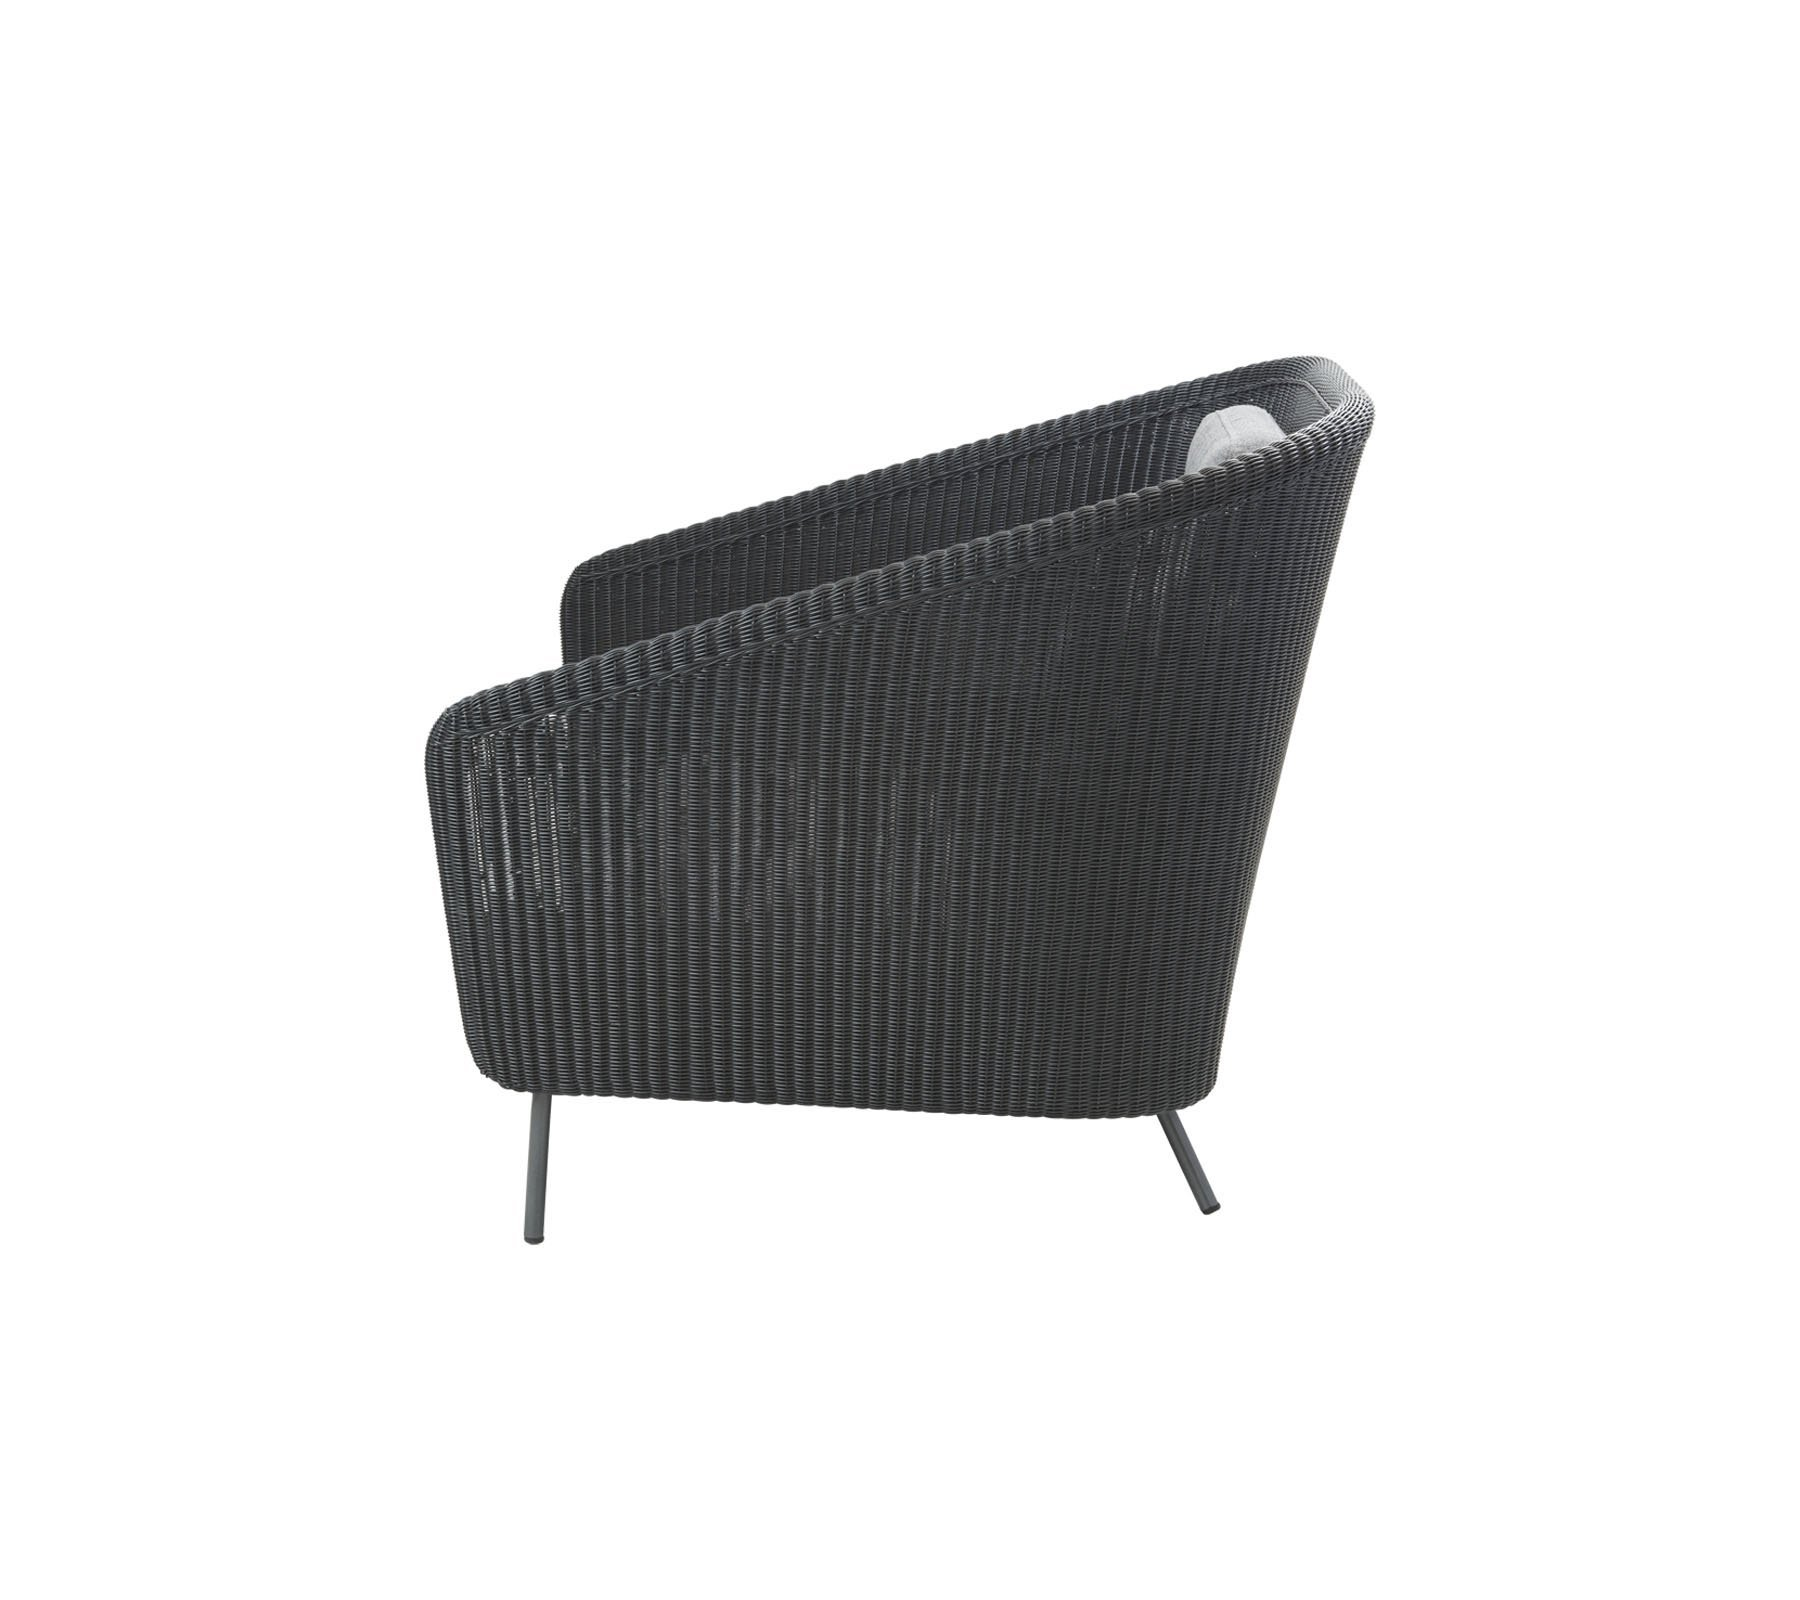 Mega Lounge Chair from Cane-line, designed by byKATO